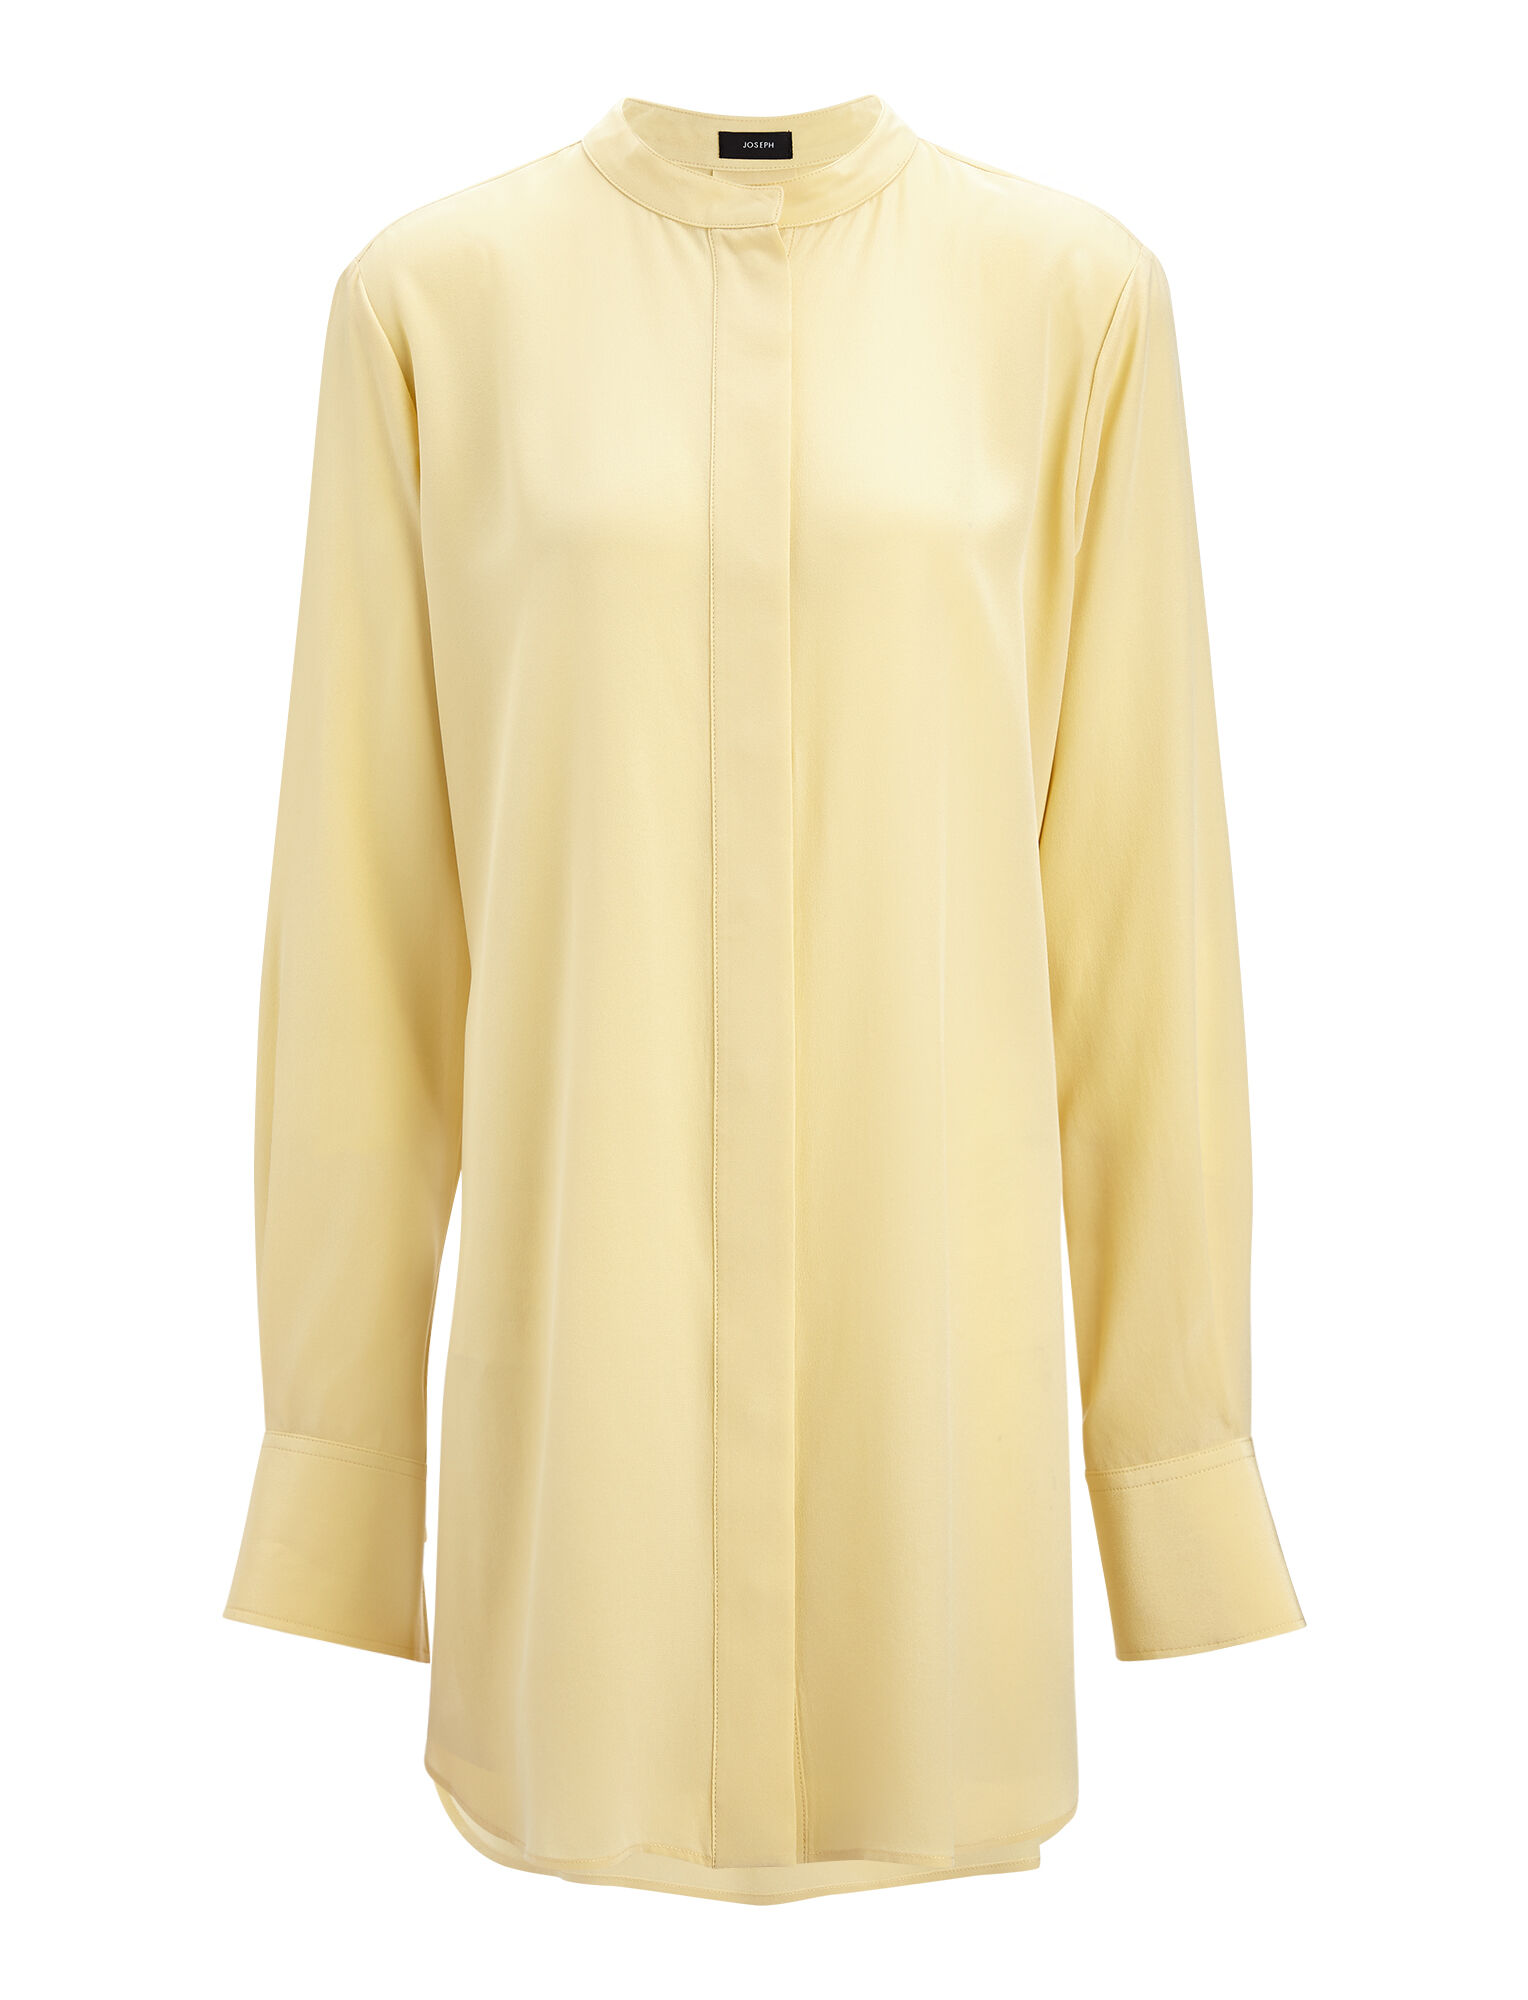 Joseph, Crepe de Chine Carla Blouse, in CUSTARD